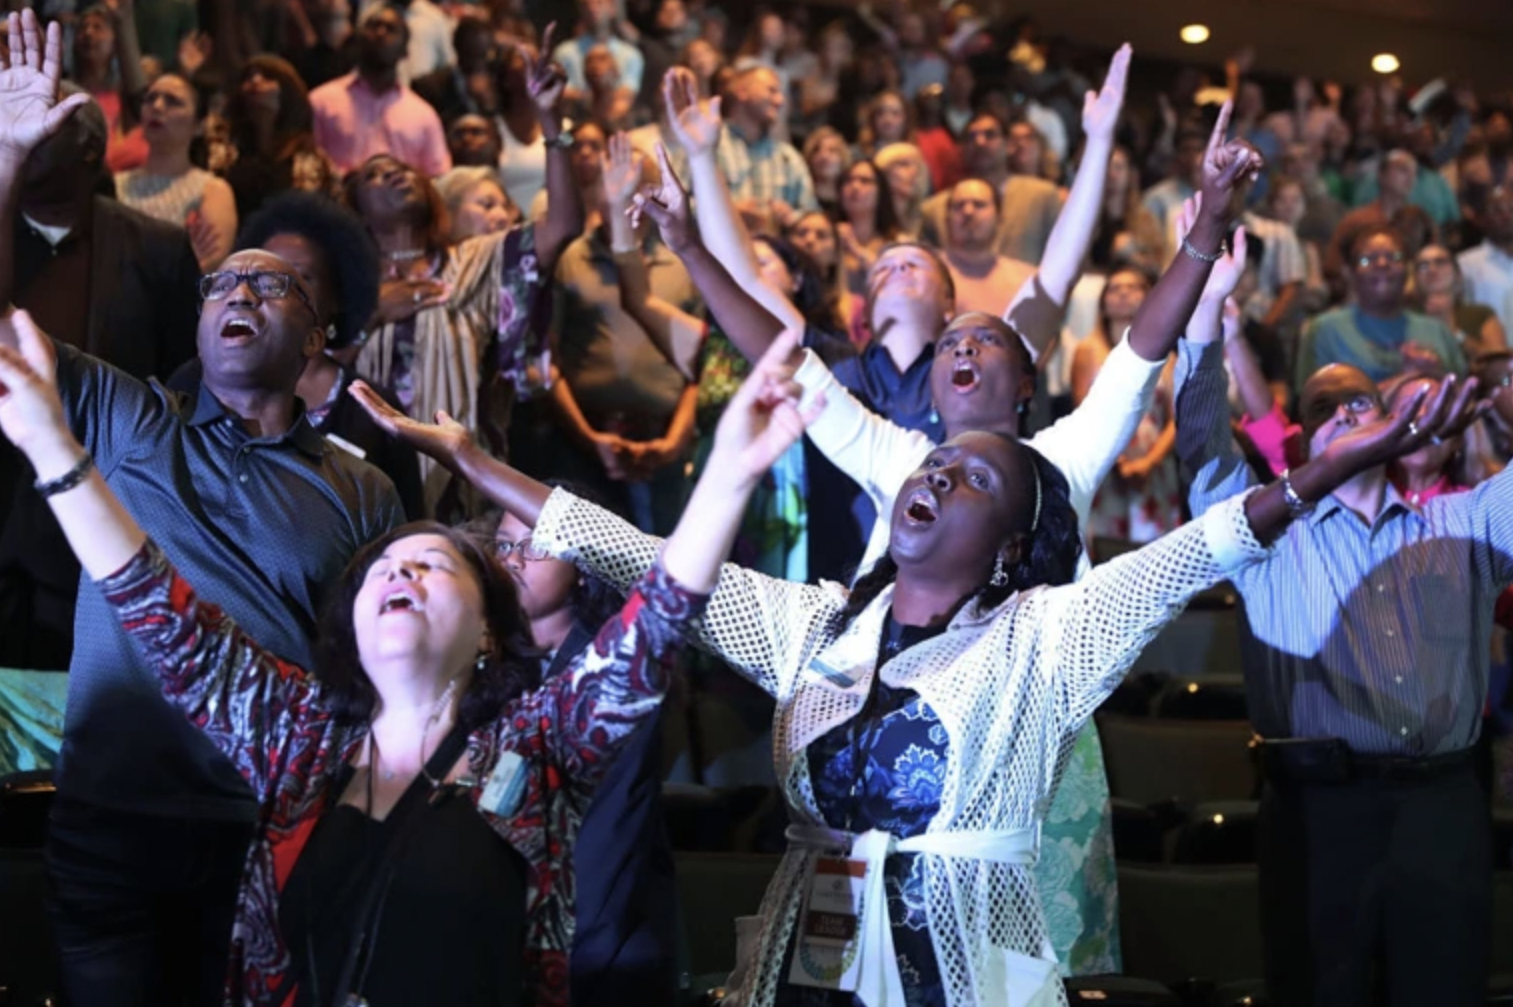 Most adult US Christians don't believe Holy Spirit is real: study